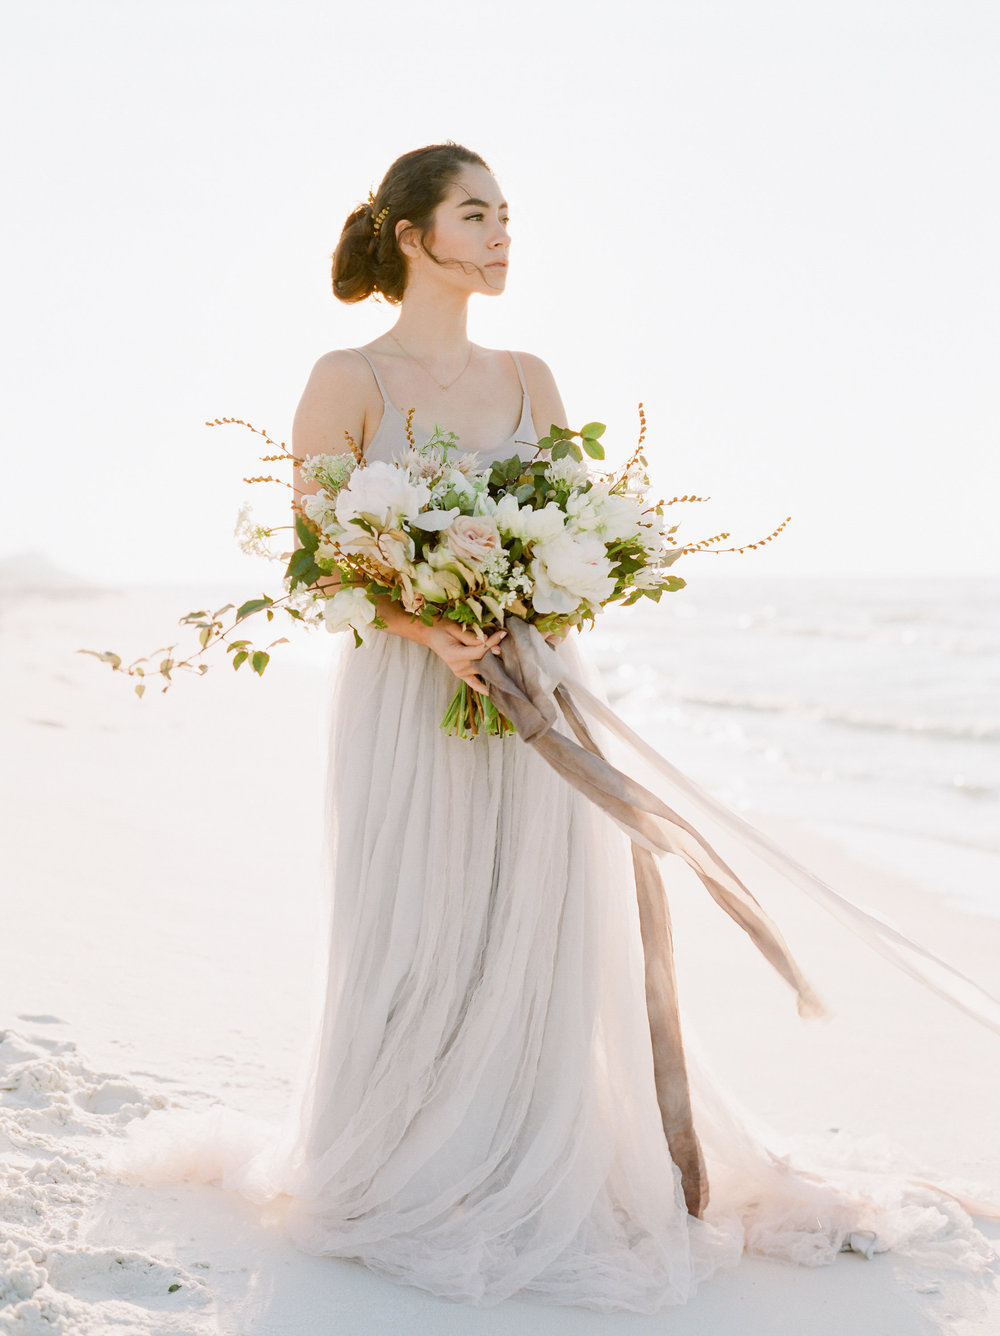 alysbeach-fl-wedding-kayliebpoplinphotography